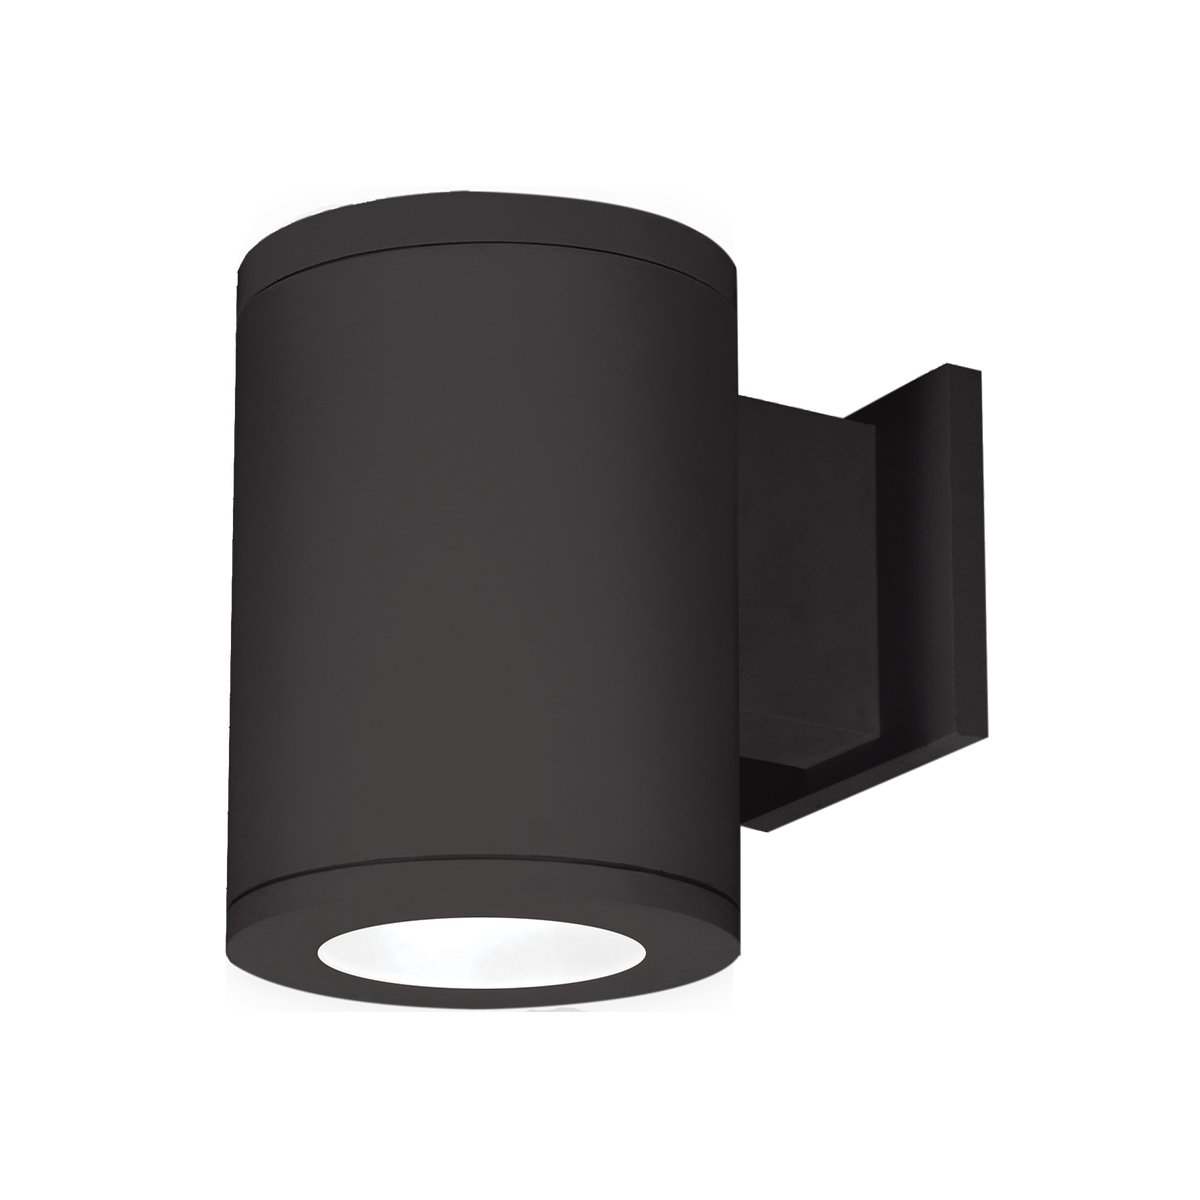 Away from Wall WAC Lighting DS-WS05-F27A-BK 5-Inch Single Side Tube Arch Wall Mount 2700K